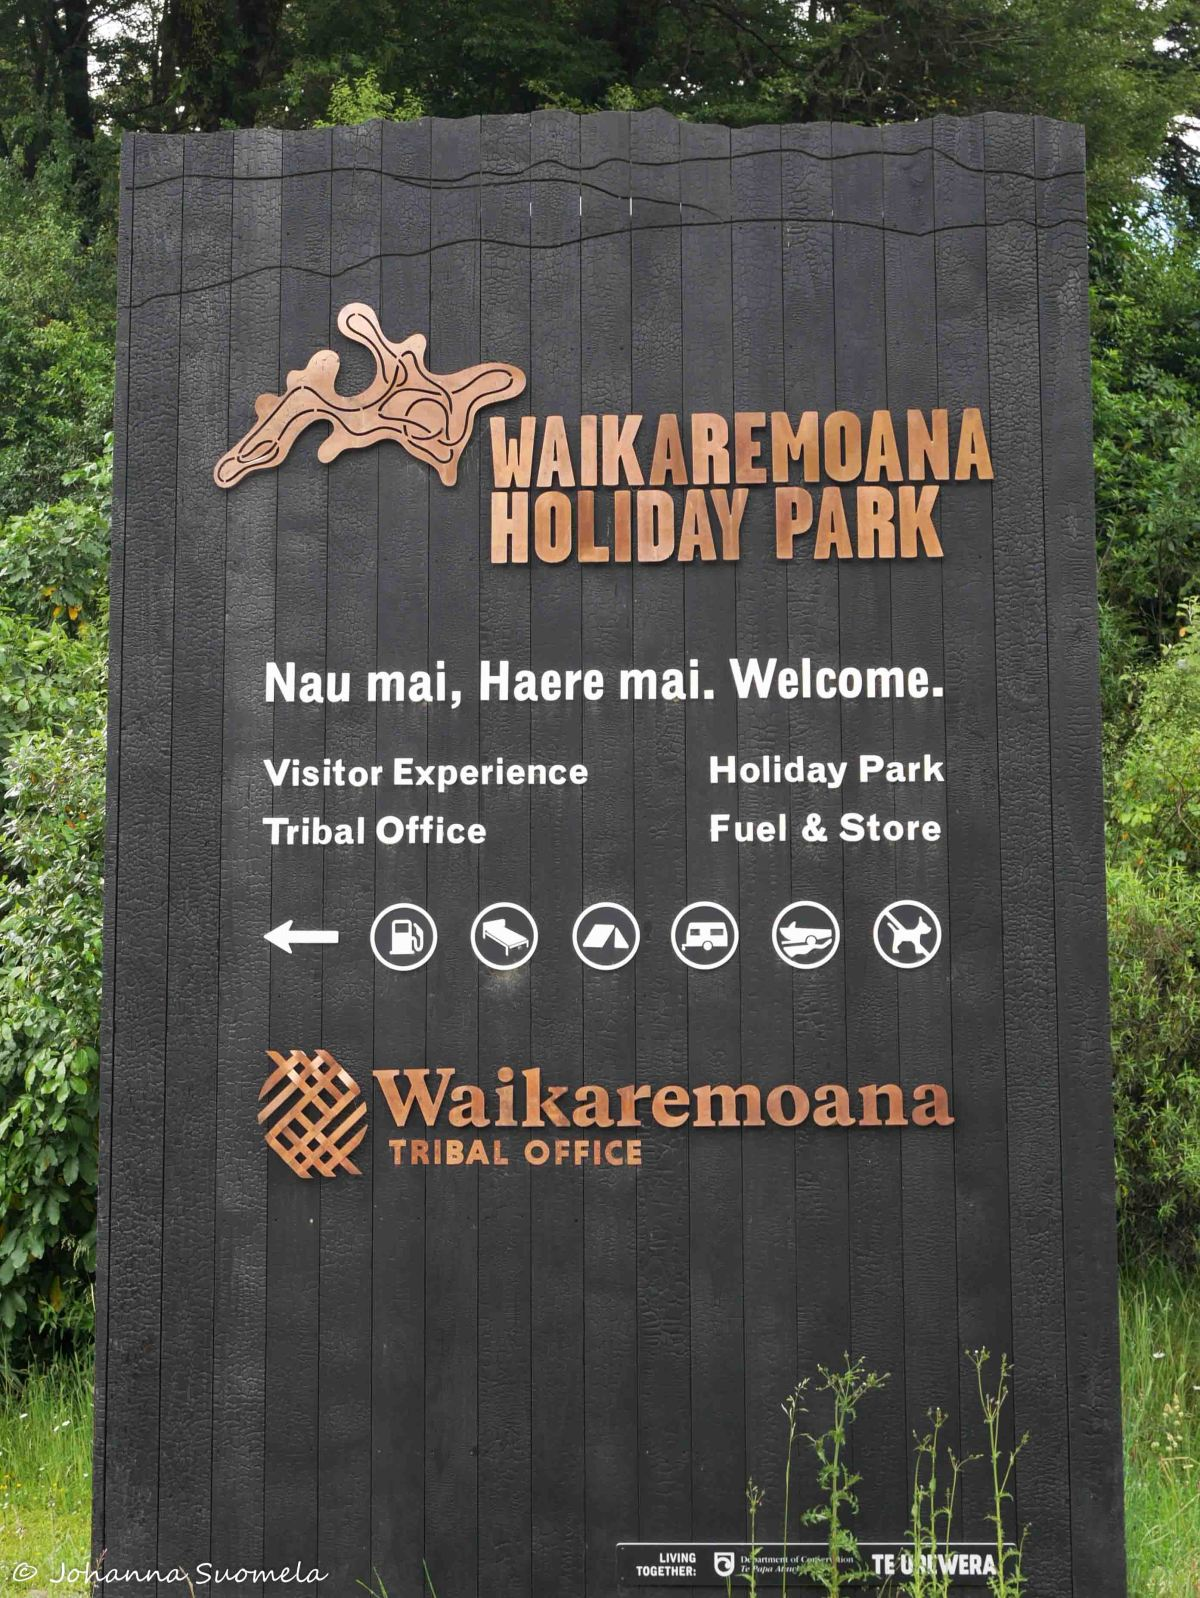 Waikaremoana Holiday Park